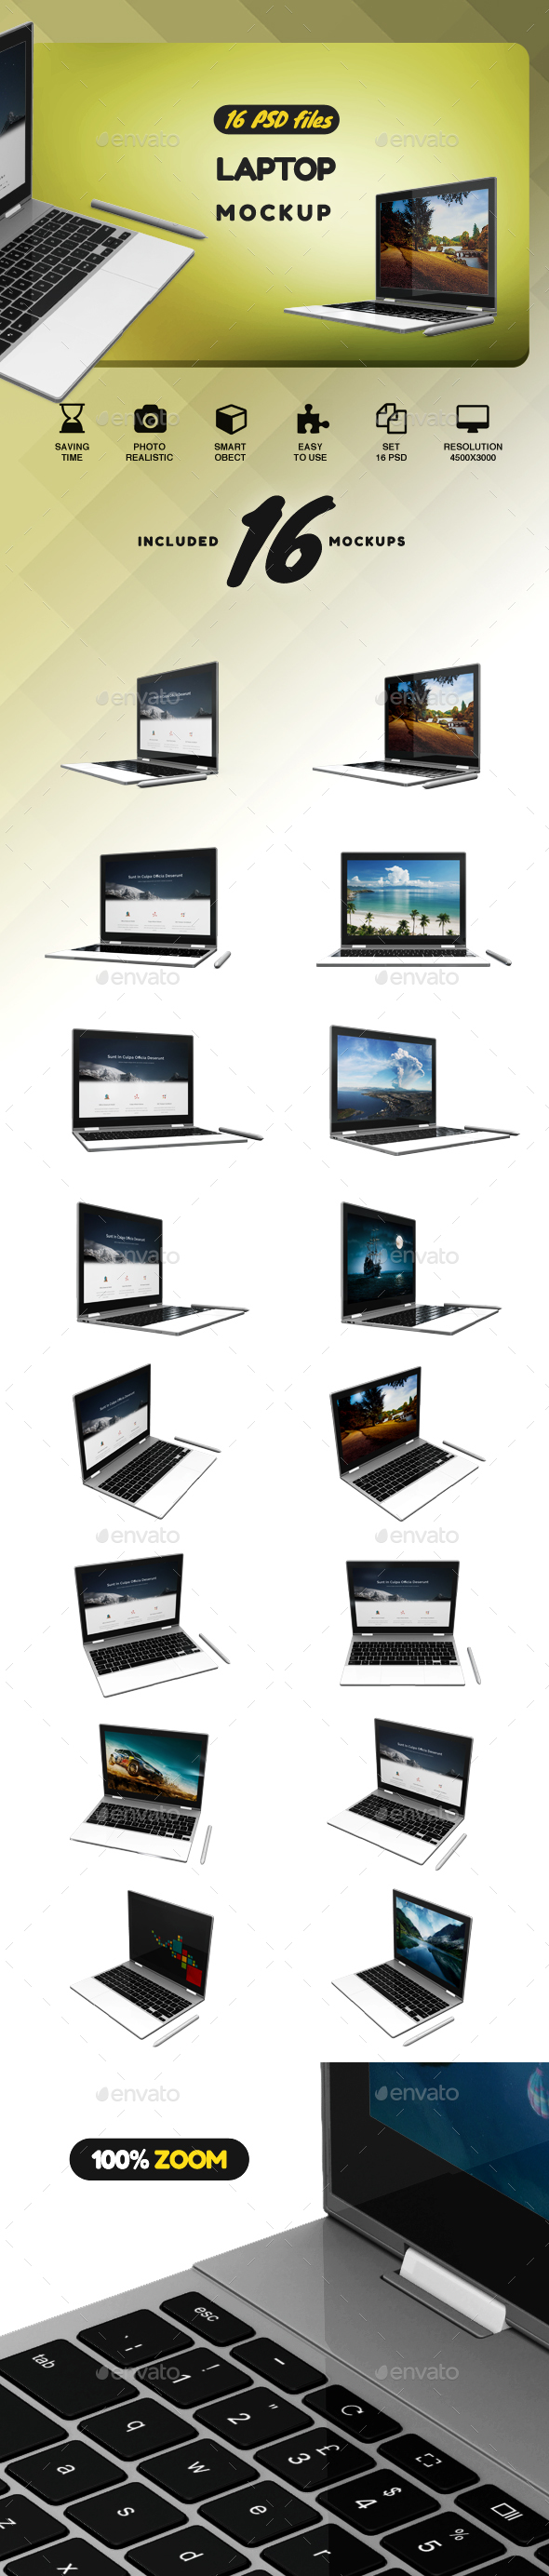 GraphicRiver Laptop Pixelbook Mockup 21122499